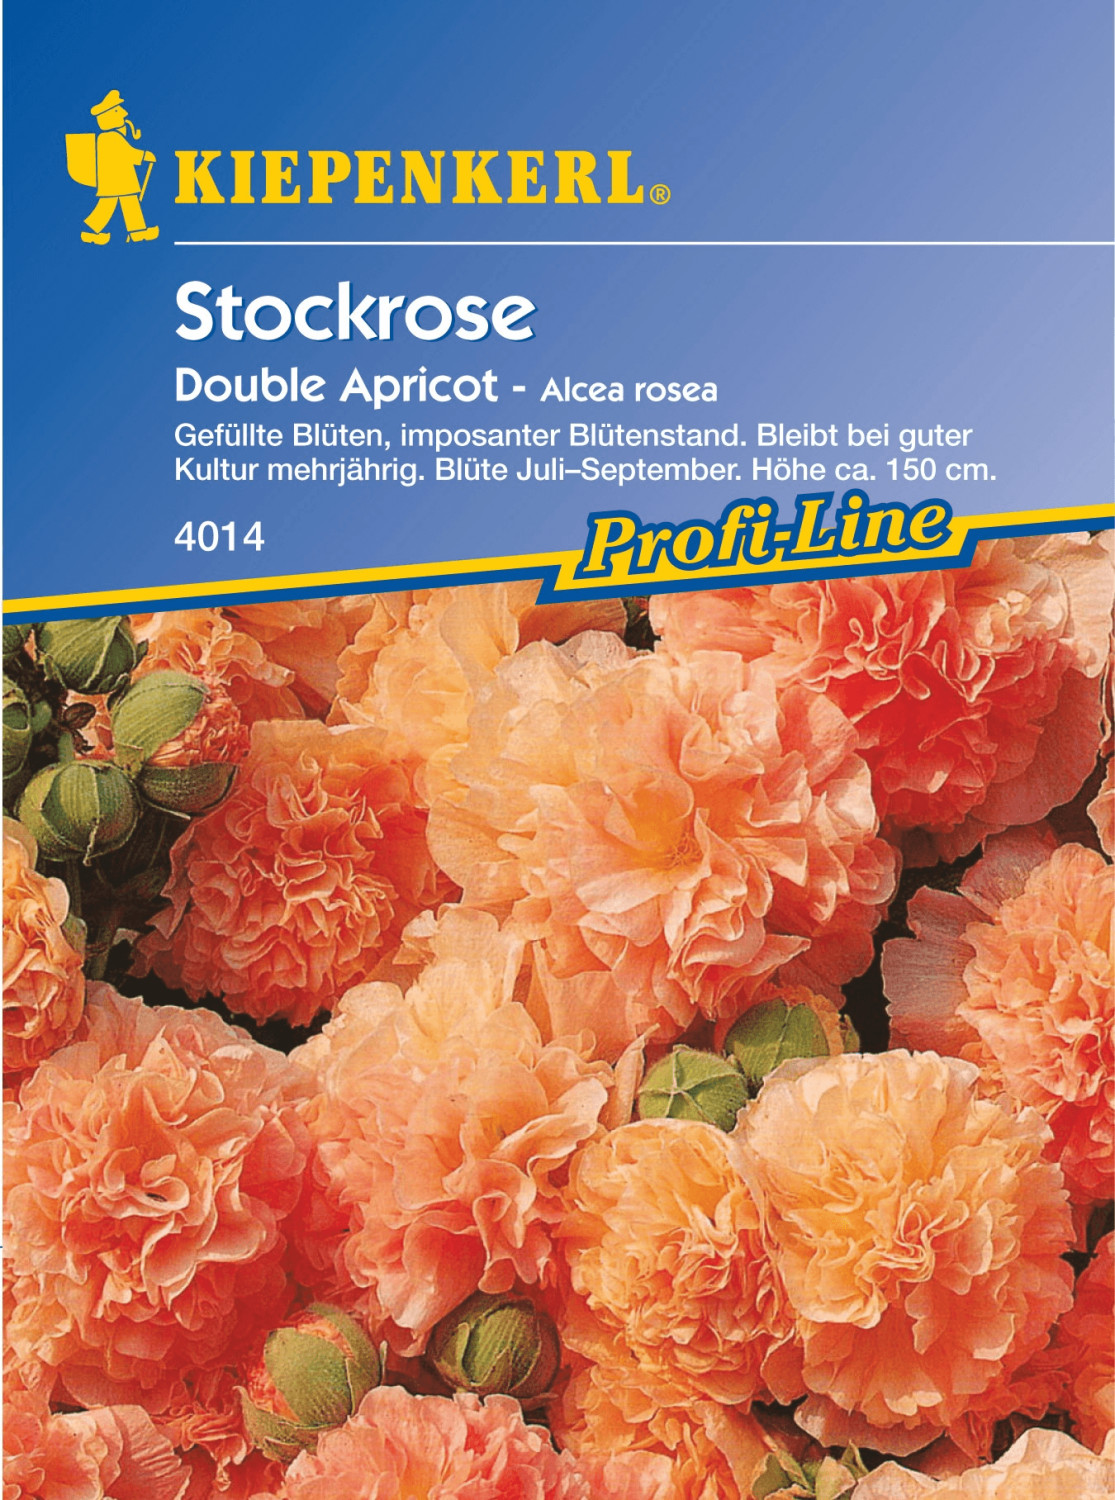 Kiepenkerl Stockrose ´´Chaters Double Apricot´´